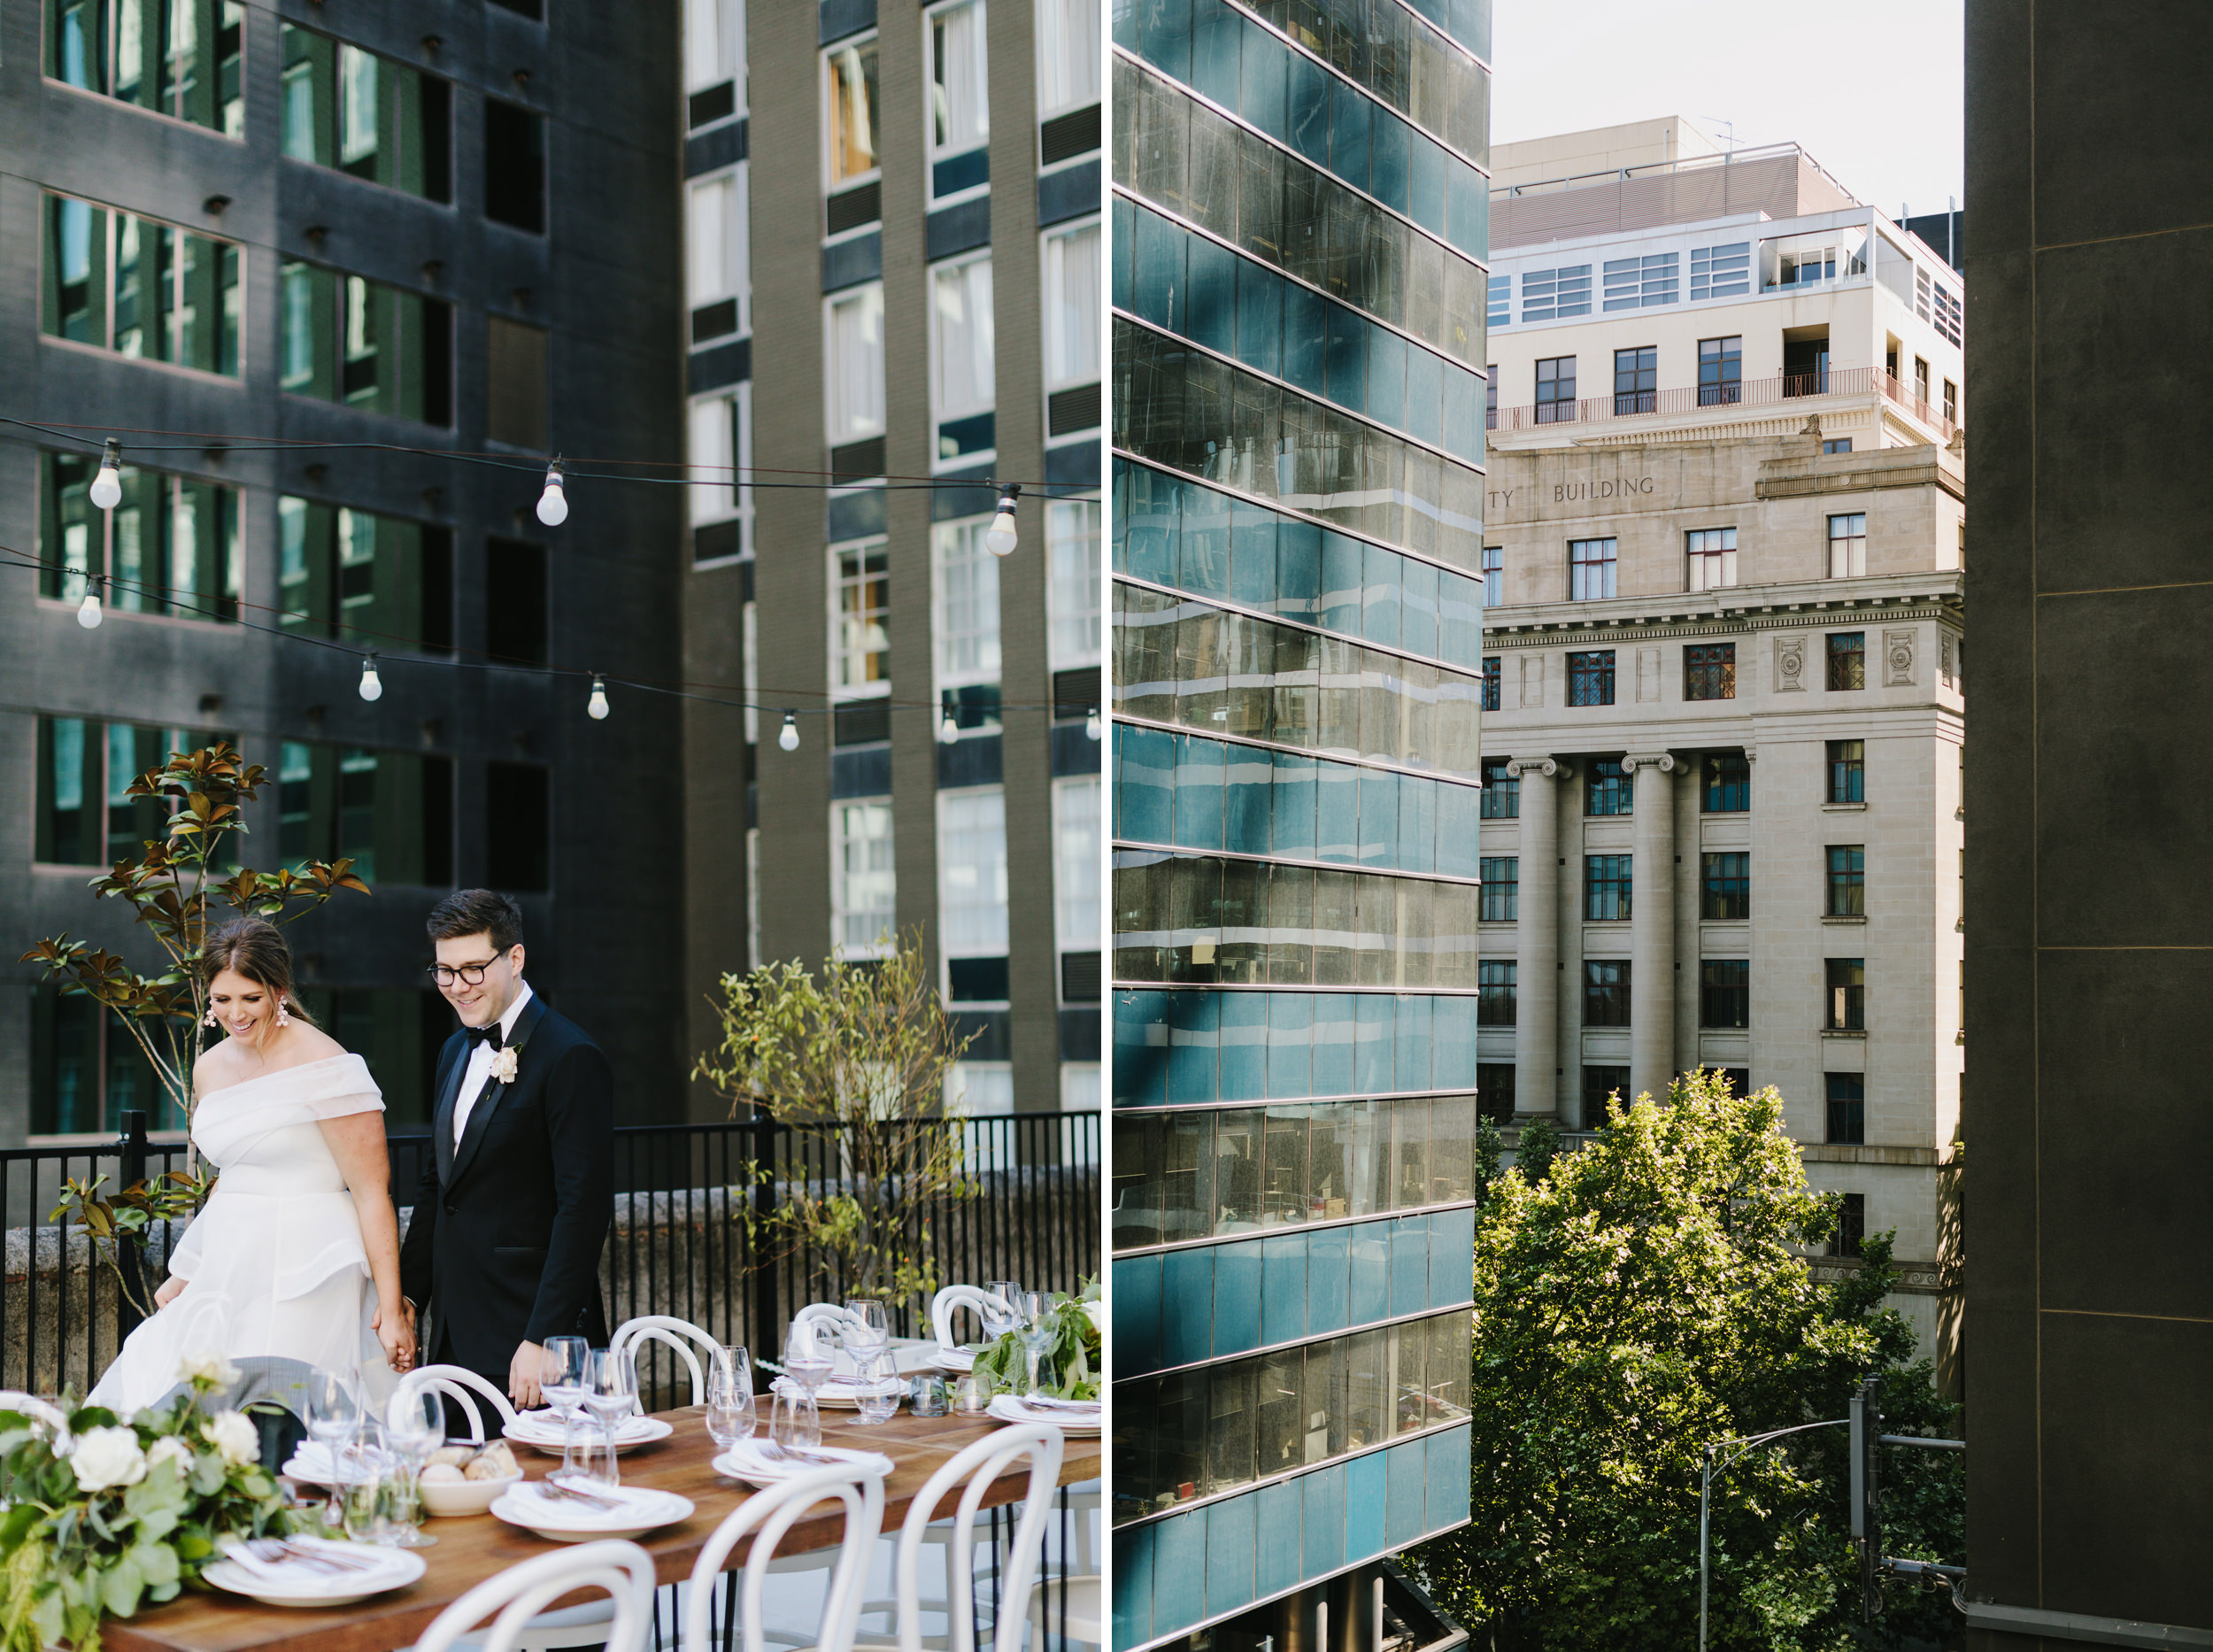 Melbourne_City_Rooftop_Wedding_Tyson_Brigette085.JPG